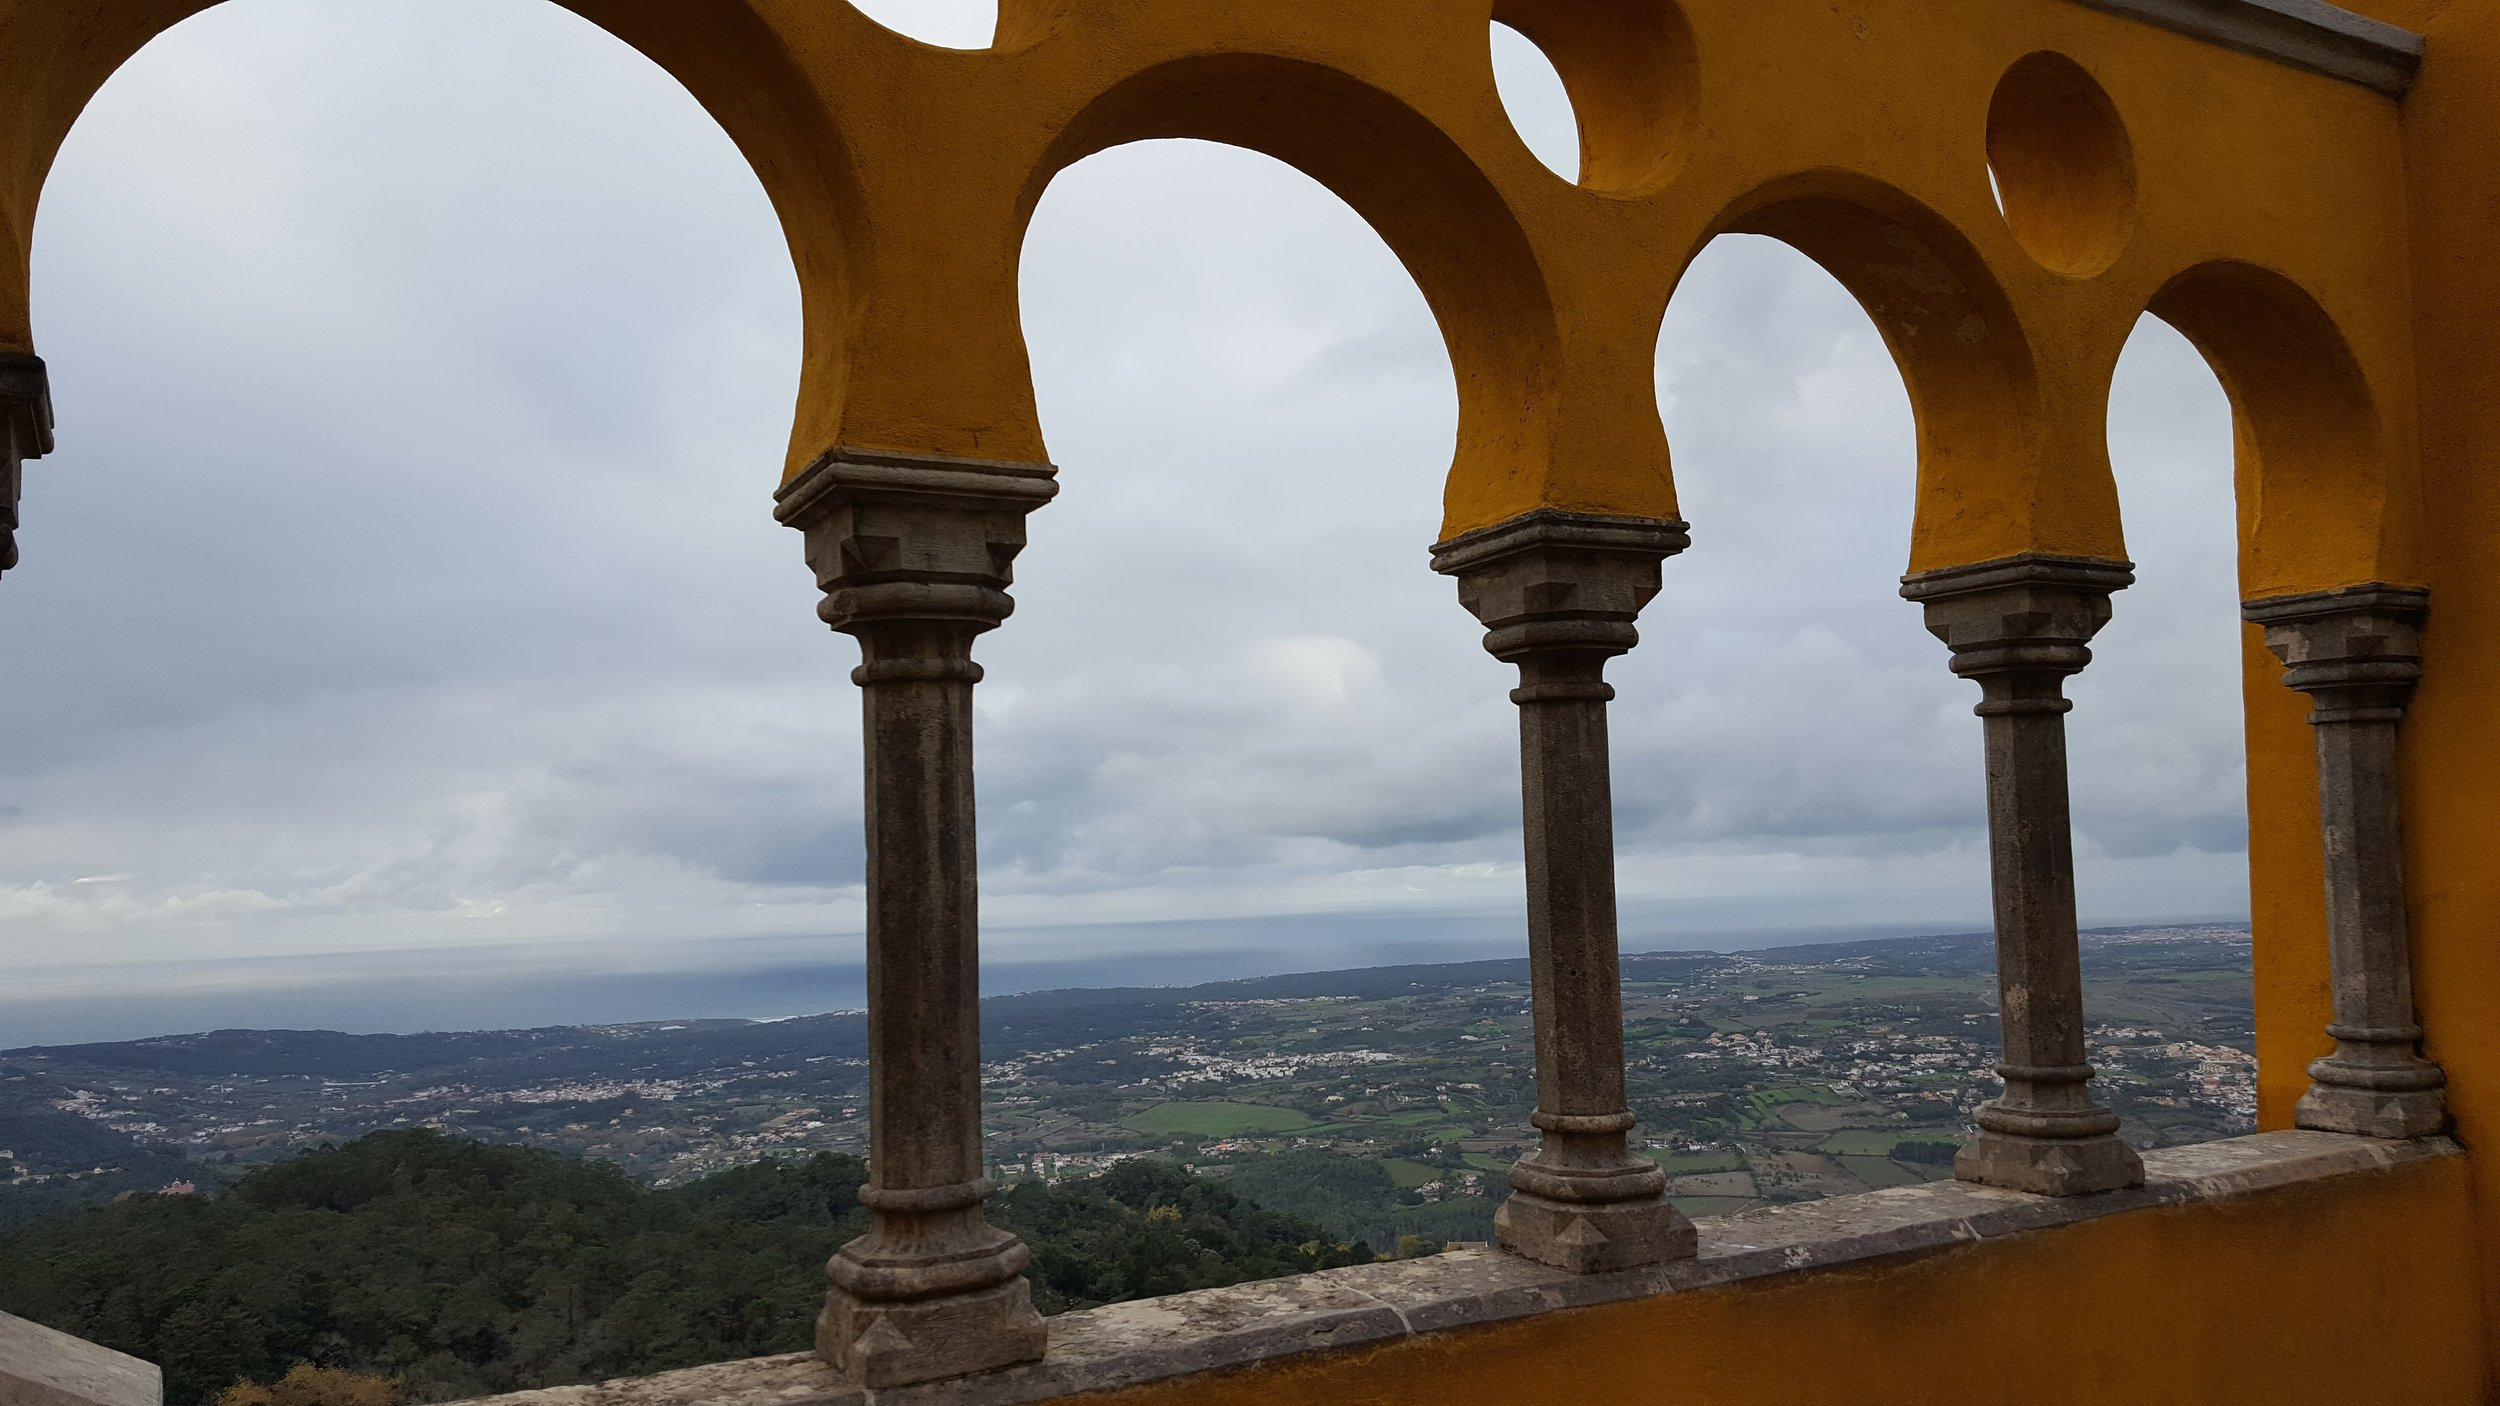 View from Pena Palace...the clouds are crazy!